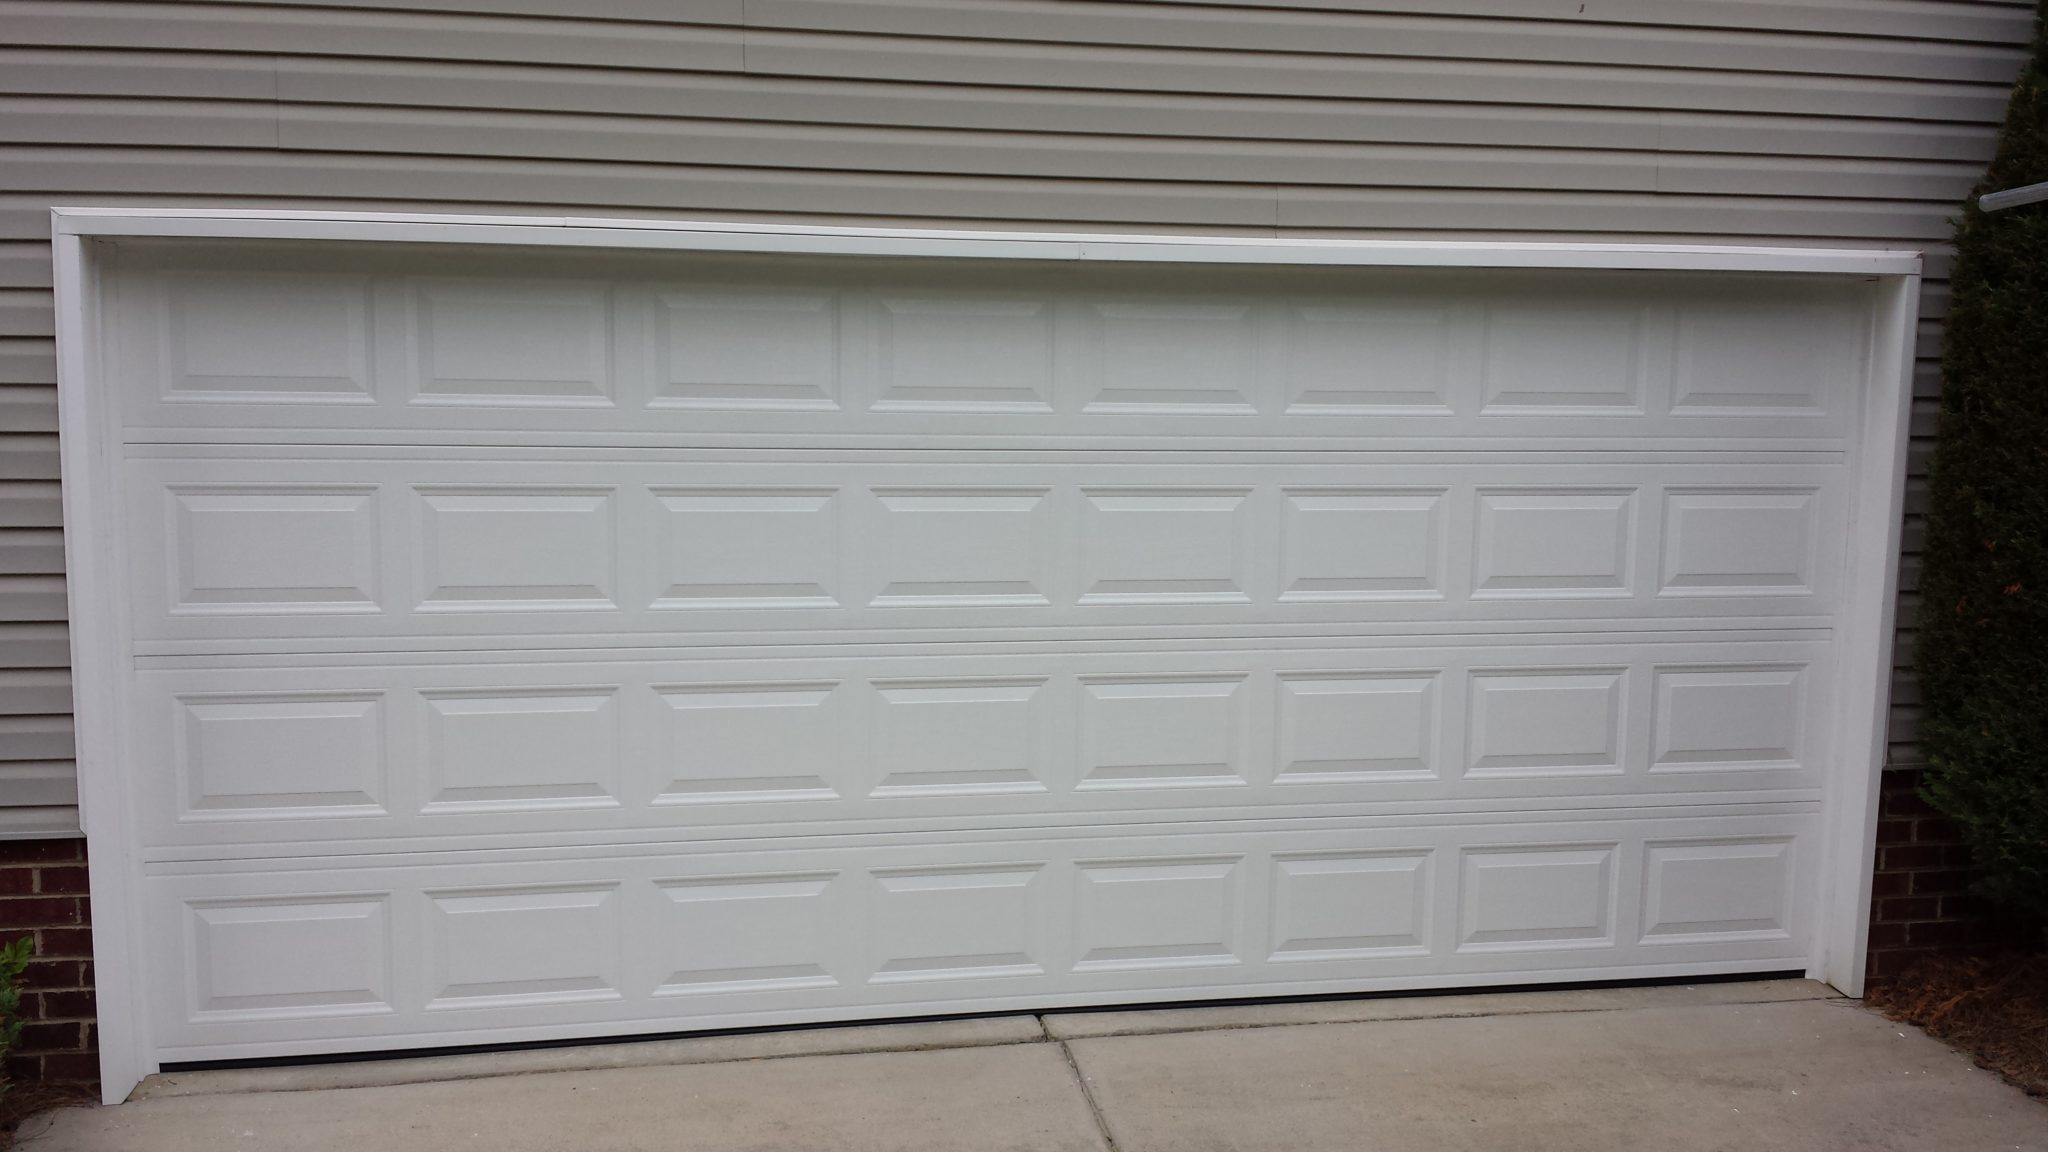 2322 #2D2823 Residential Garage Door Installation Concord NC North Carolina A Plus save image Garage Doors Installers 37774128